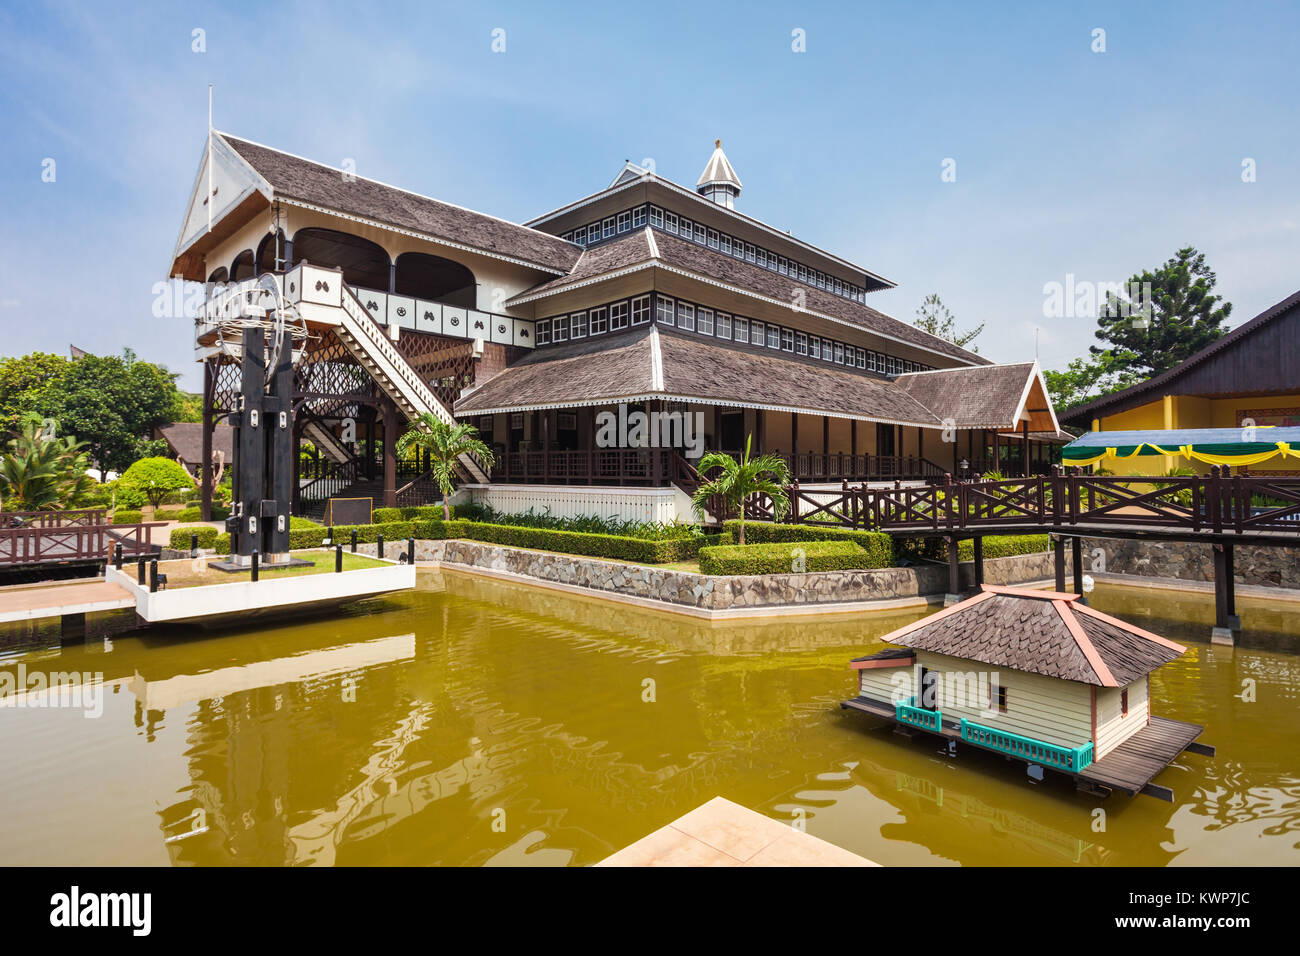 Taman Mini Indonesia Indah is a culture based recreational area located in East Jakarta - Stock Image